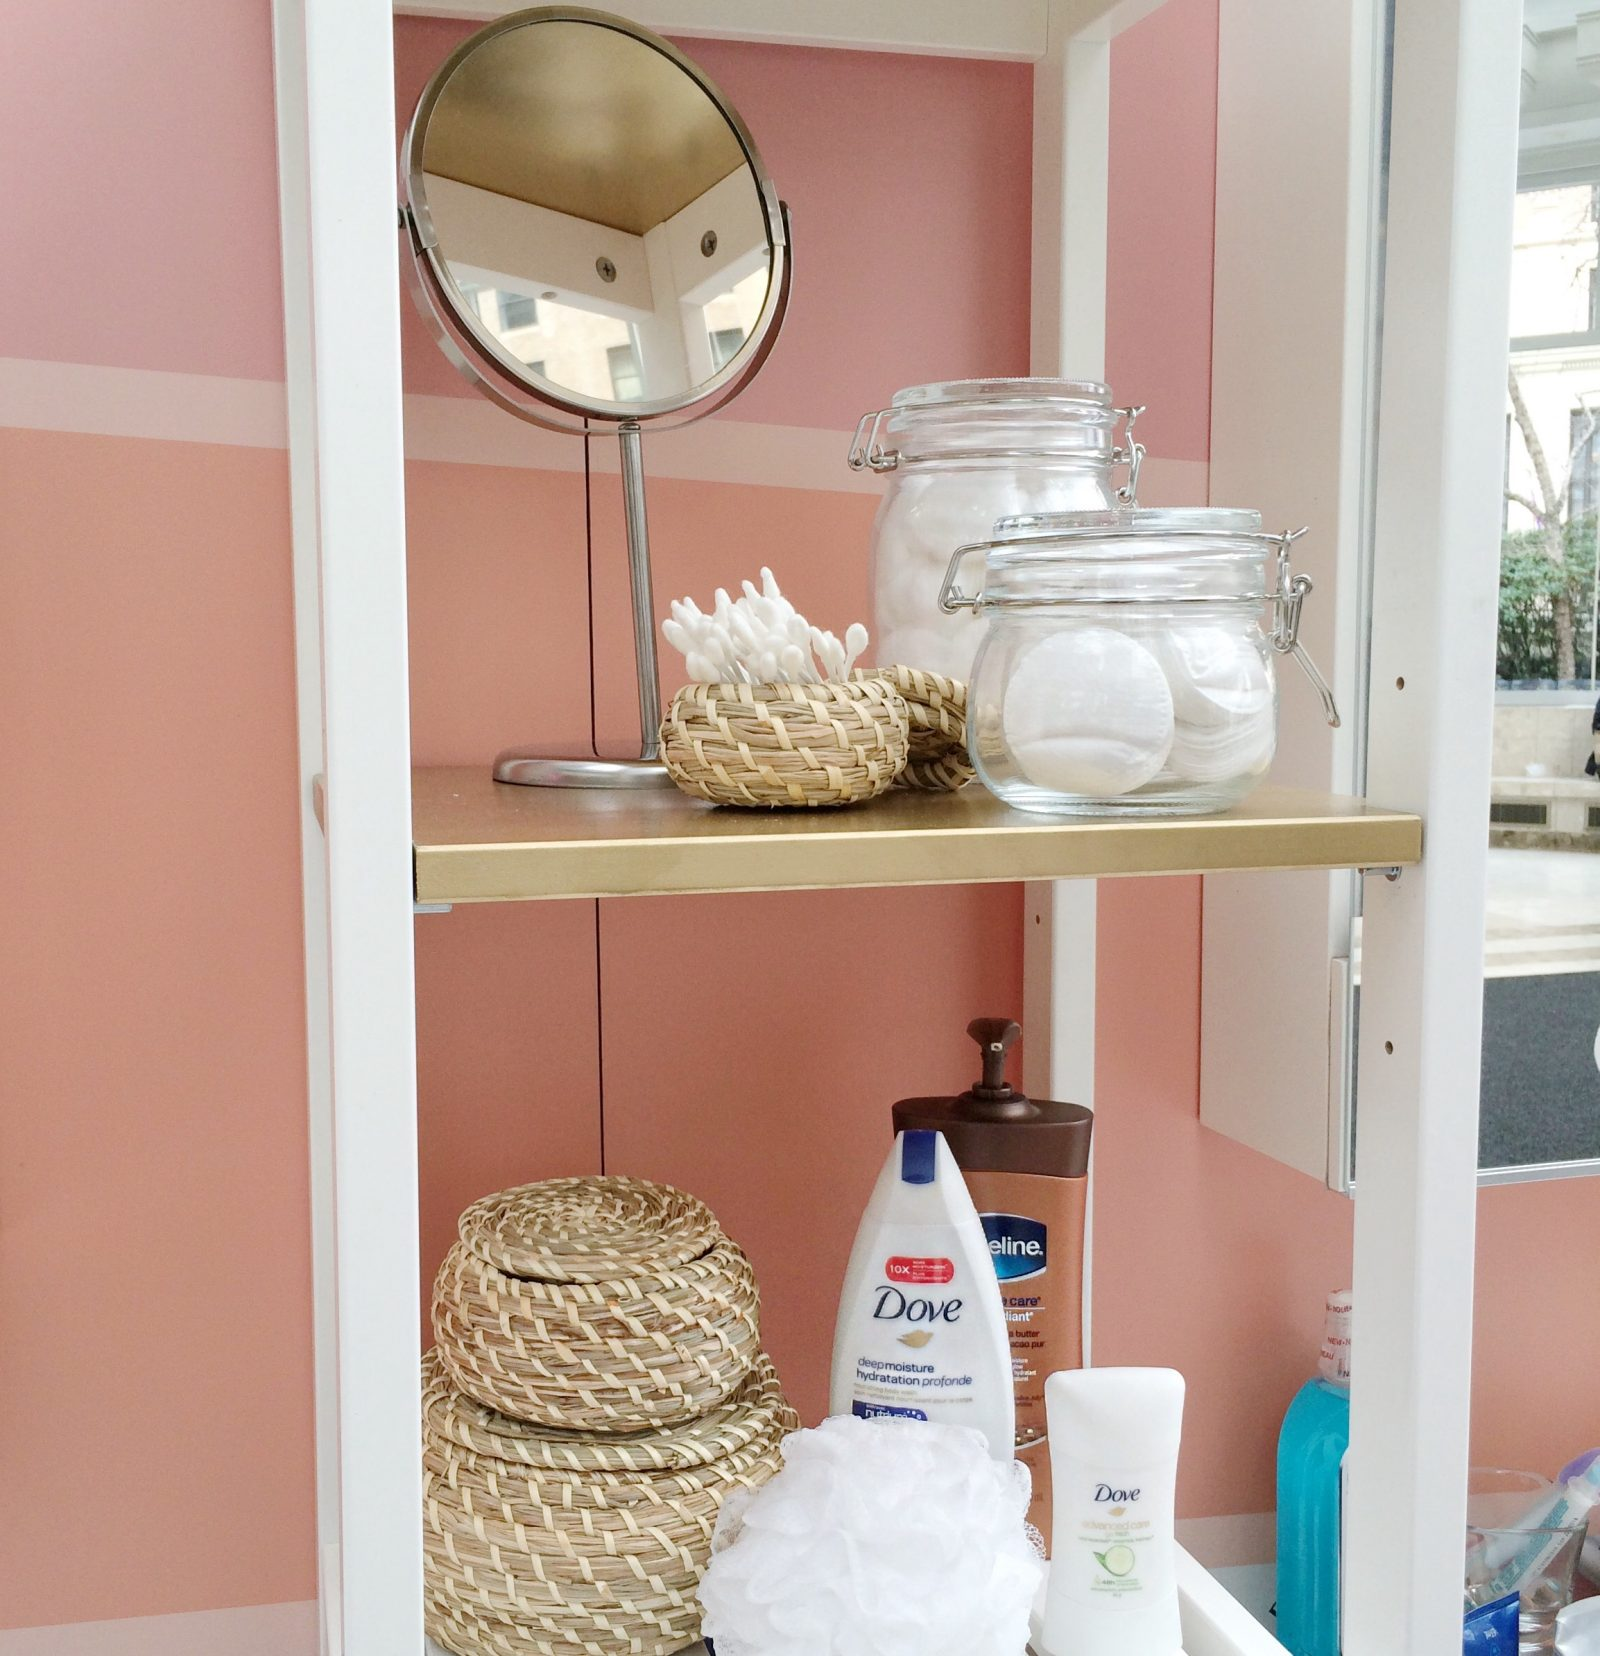 Bathroom Accessories Vancouver Shoppers Drug Mart Top Picks My Beauty Favourites A Vancouver